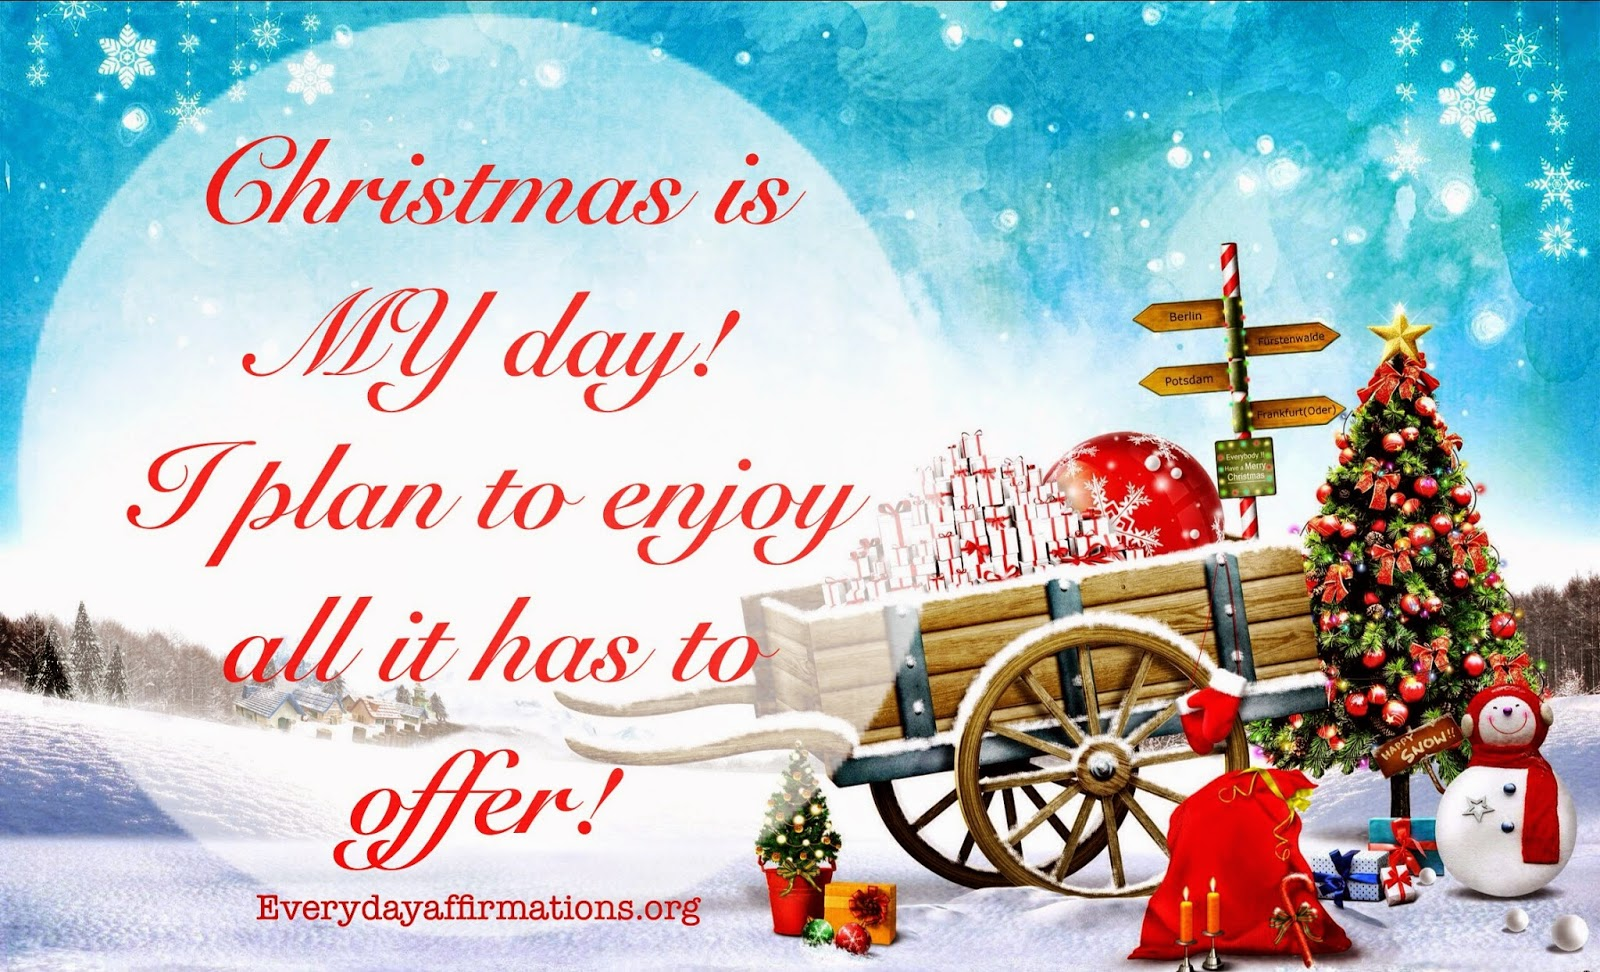 Daily Affirmations, affirmations for christmas, newyear affirmations